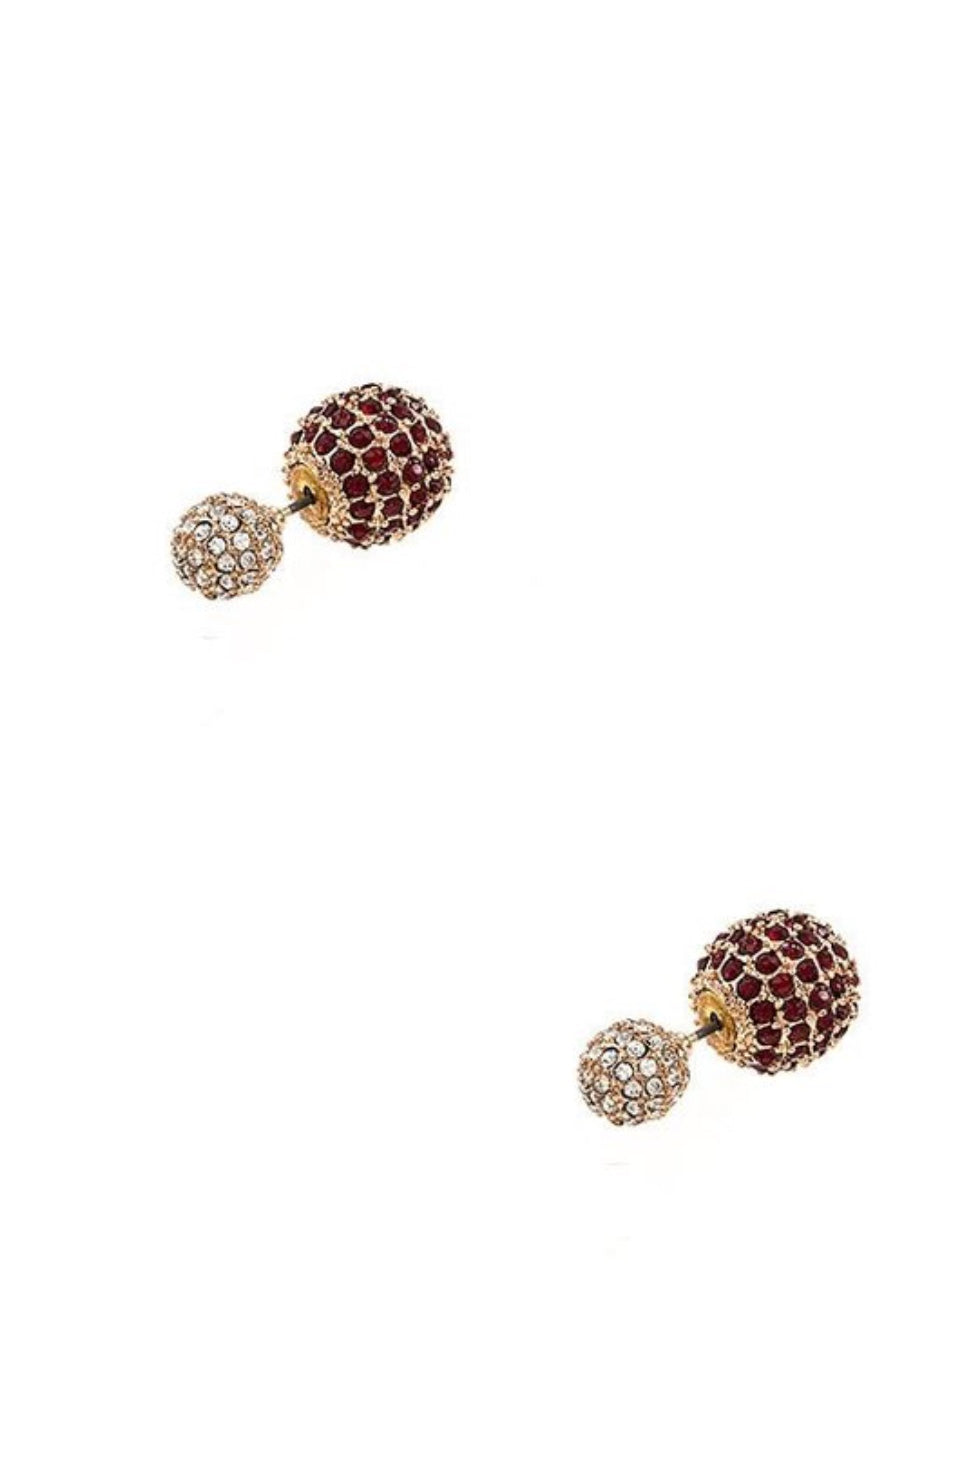 Double Sides Post Earrings - Red Clear